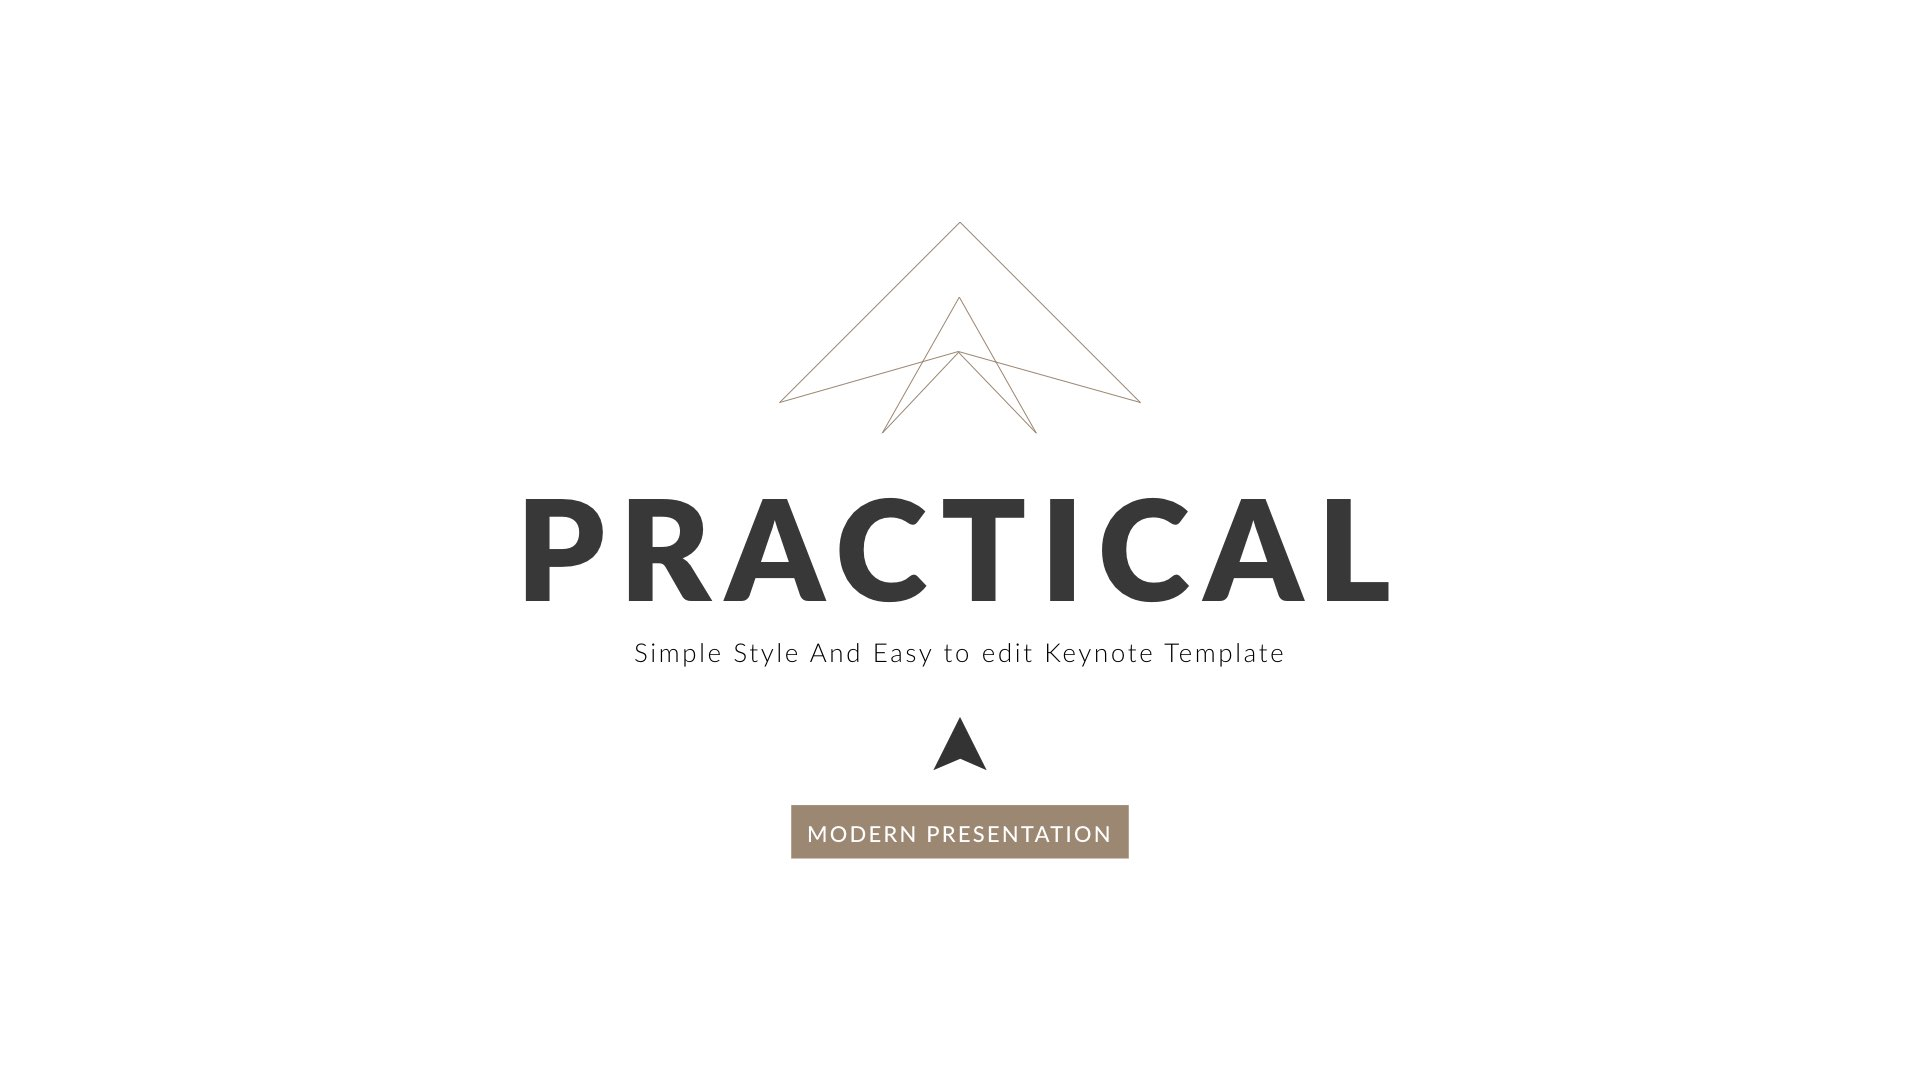 17 - Practical Clean Trend Keynote Template